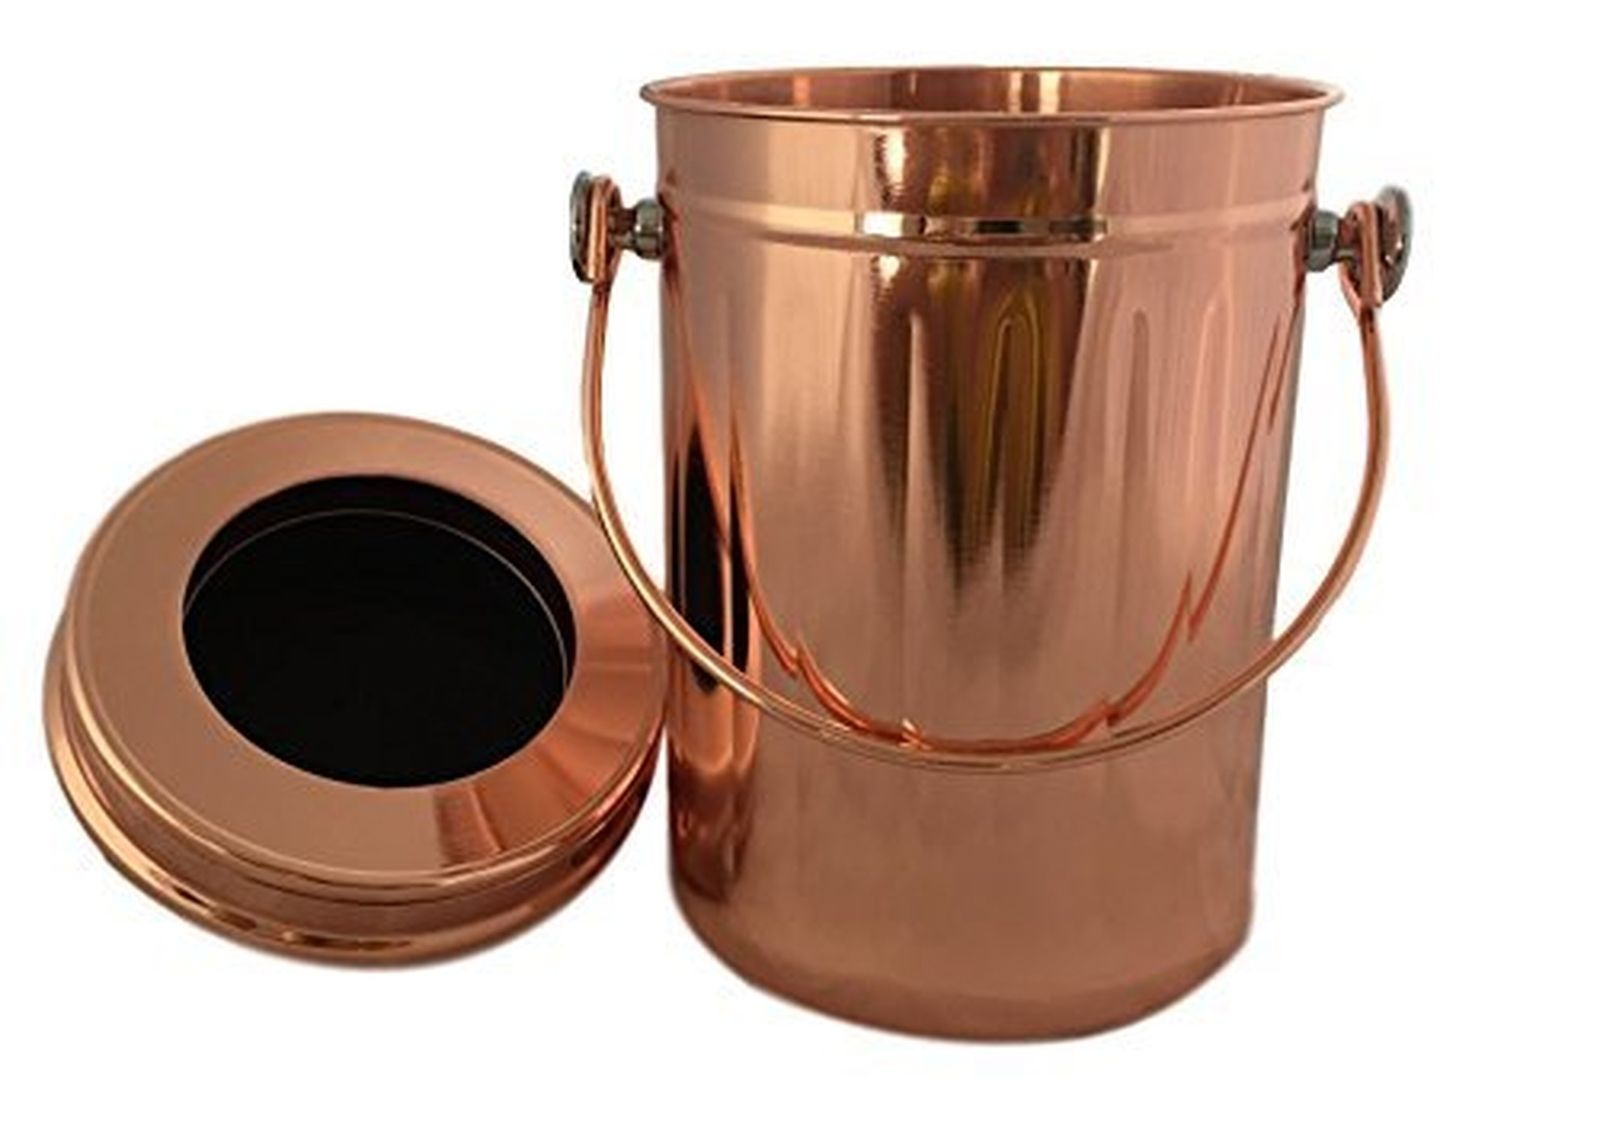 *ROSE GOLD* Stainless Steel Compost Pail